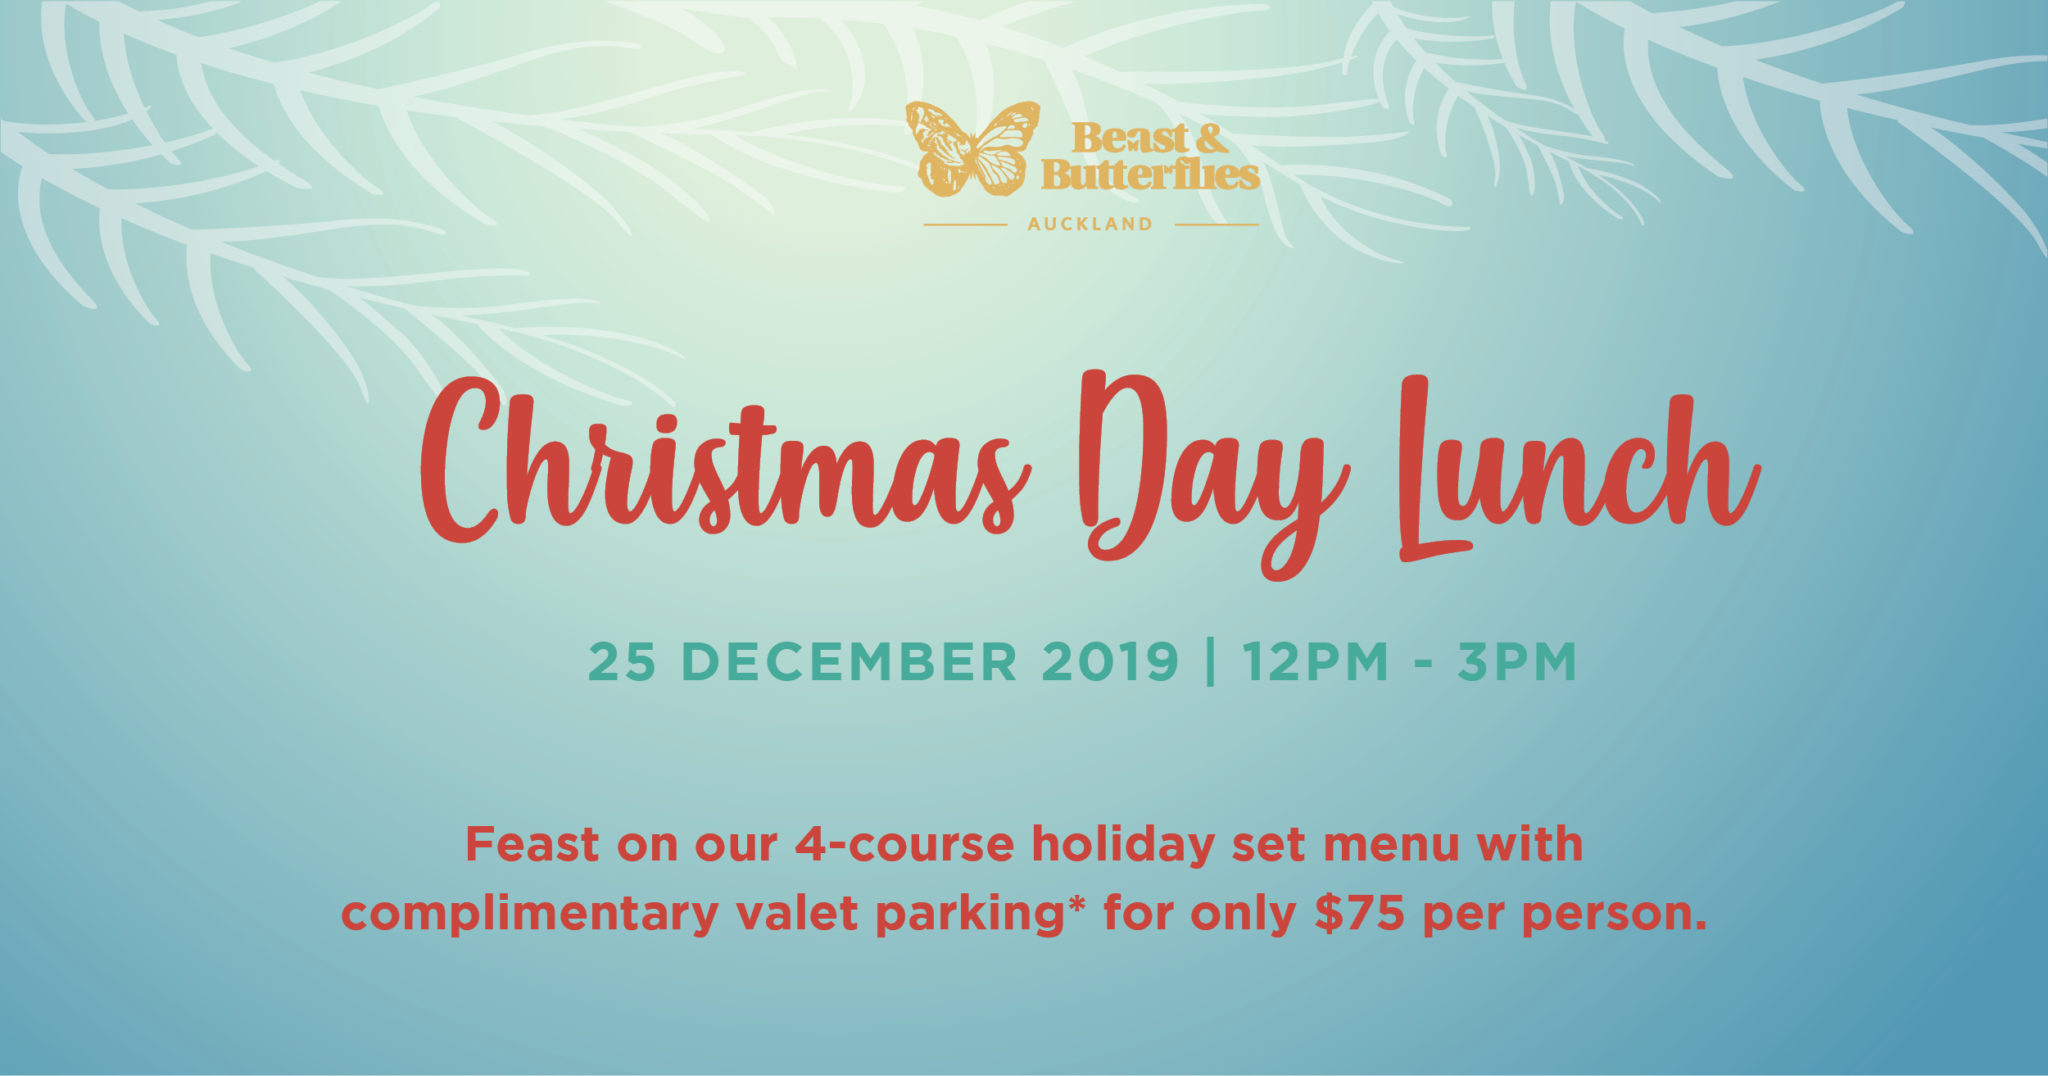 Christmas Day Lunch 2019 Auckland